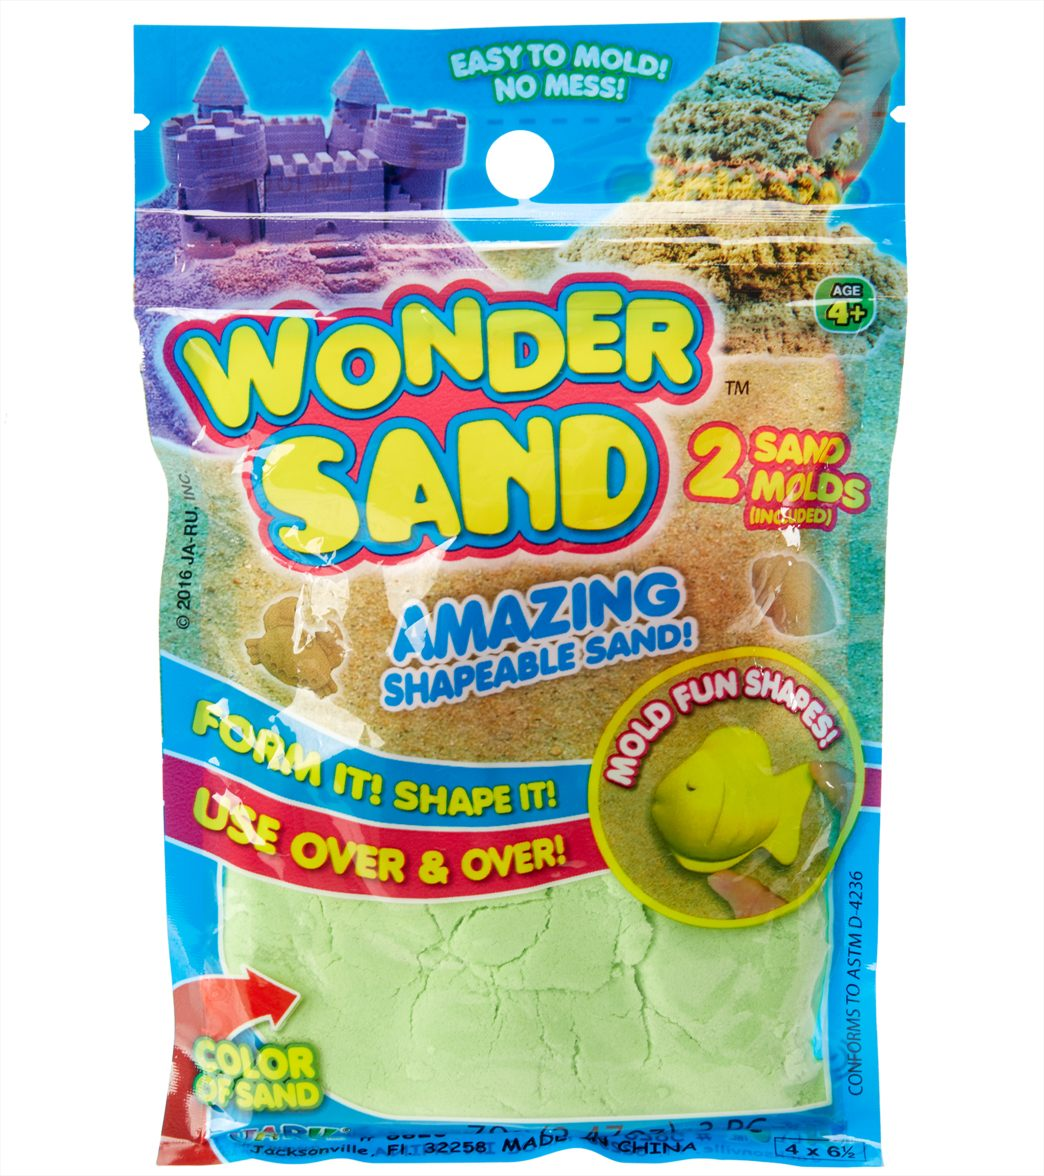 Wonder Shapeable Sand